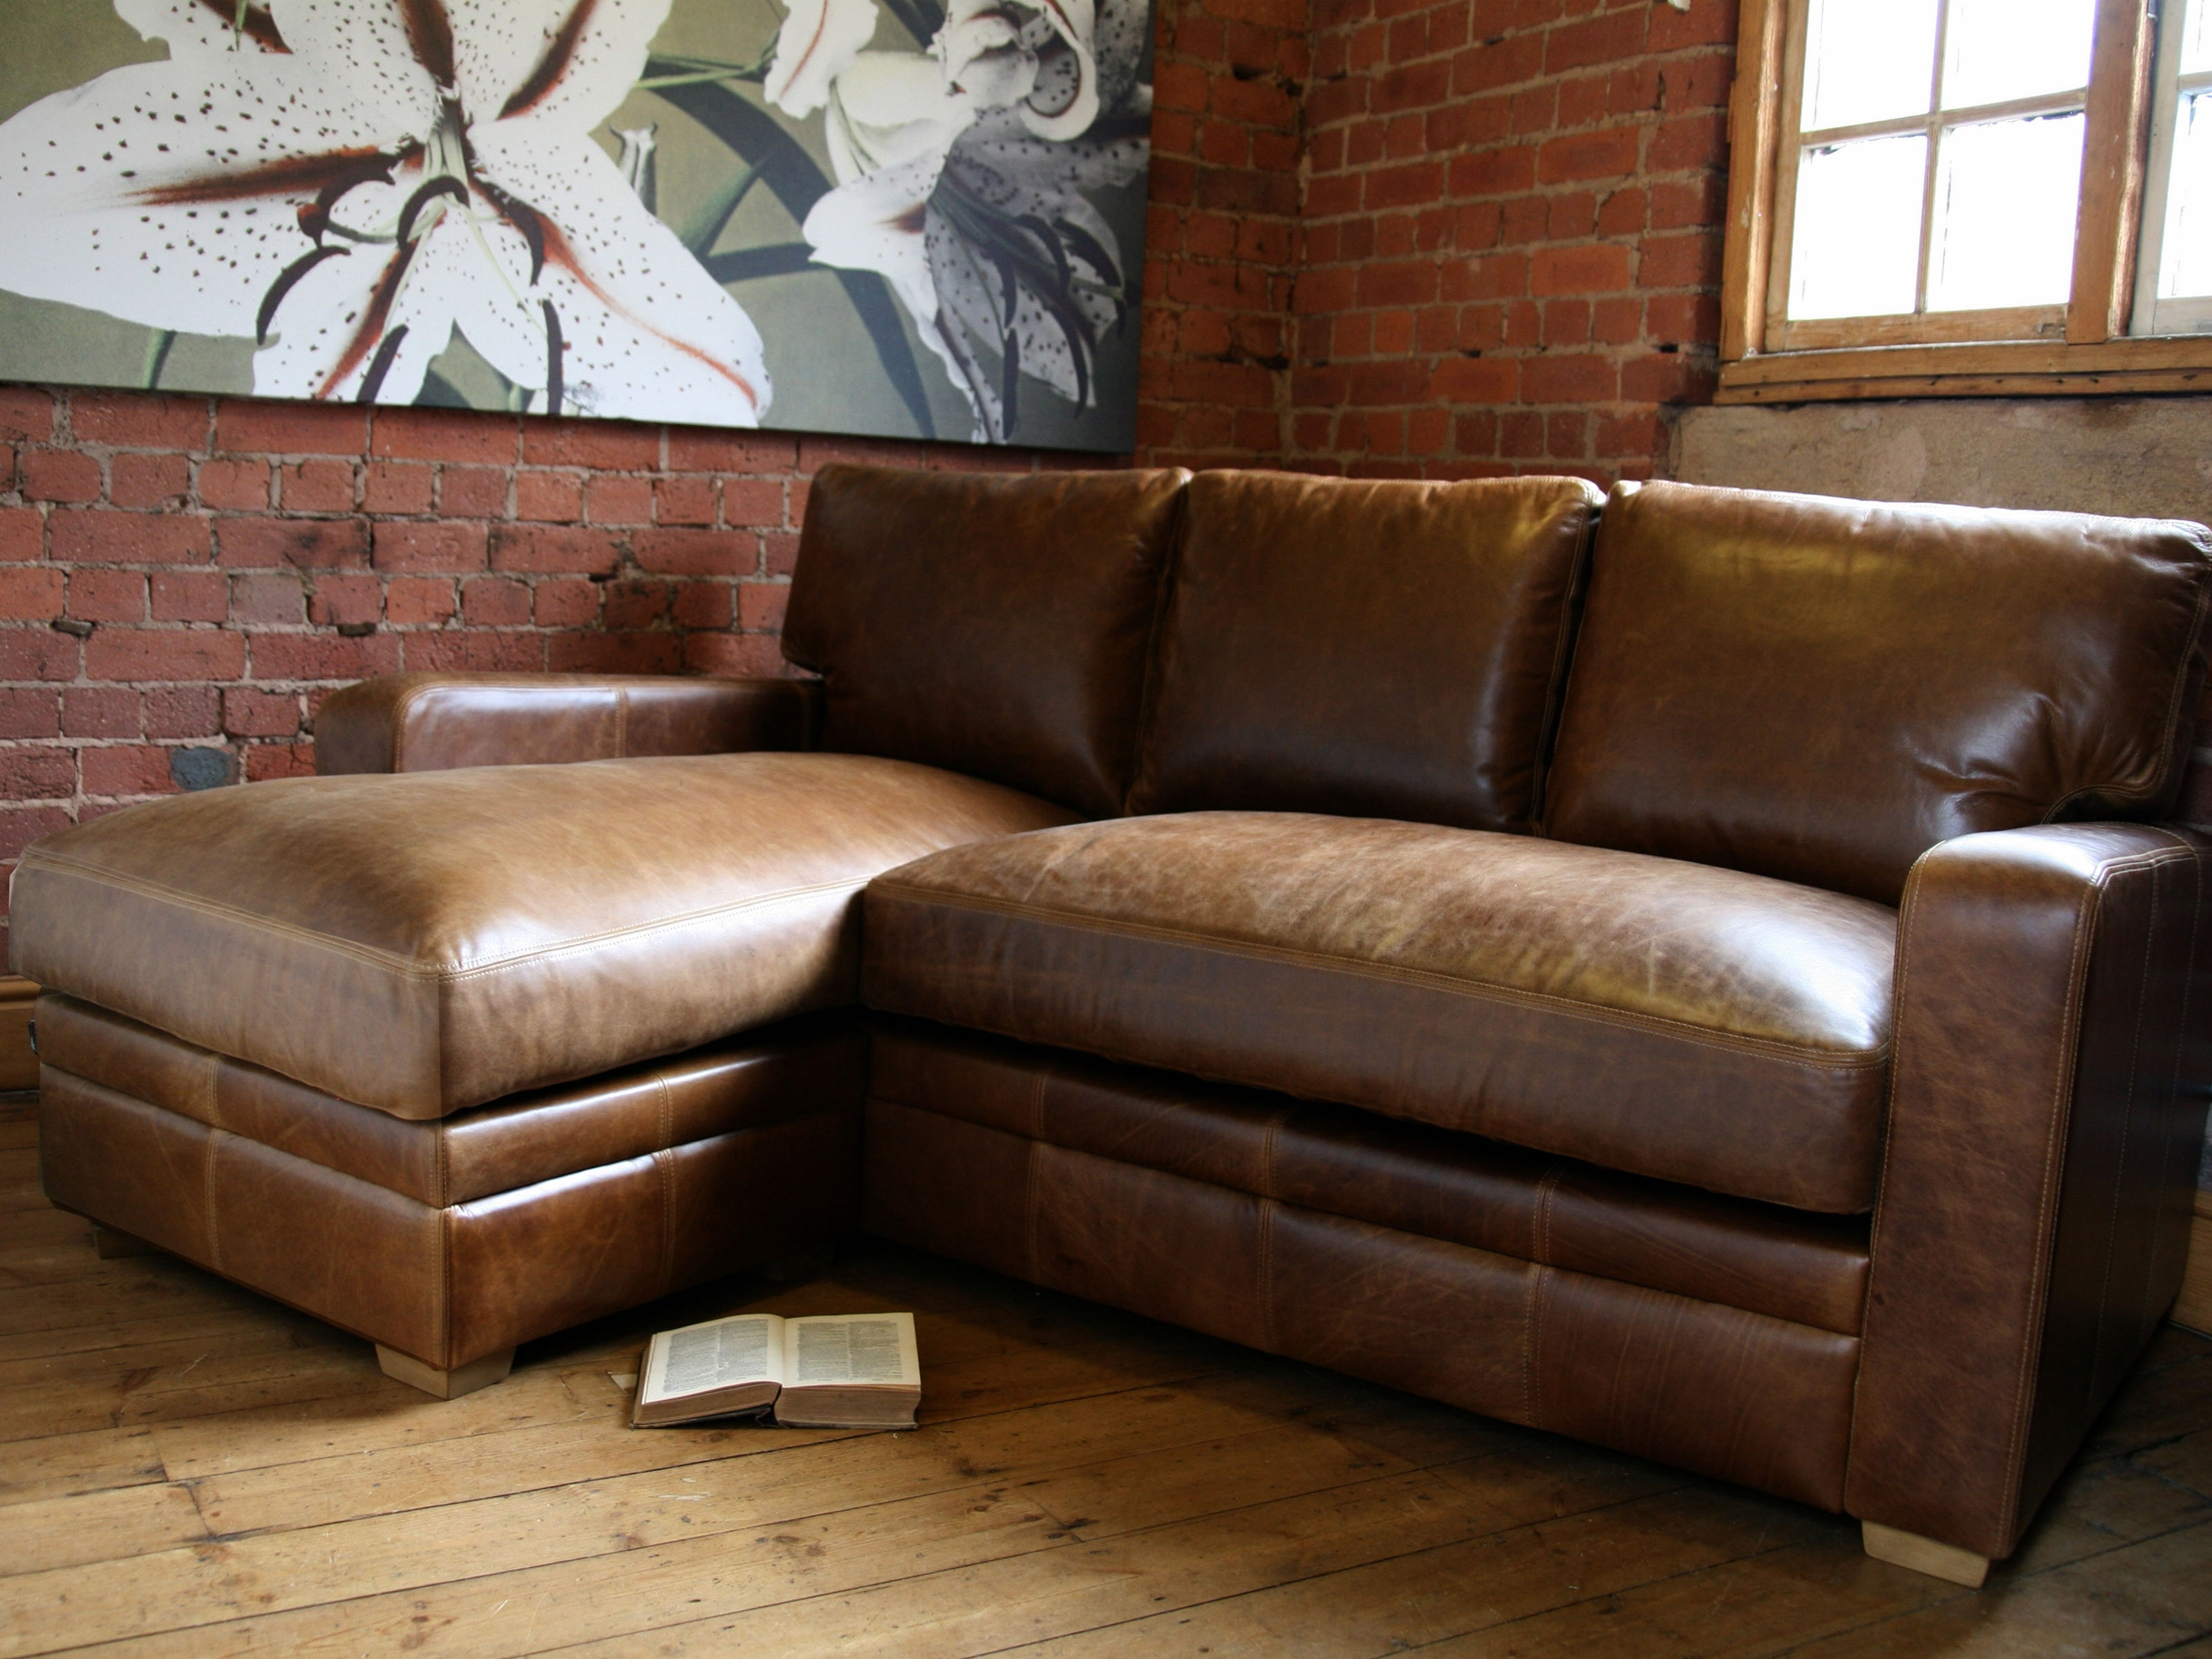 Inspirational Leather Sofa Chaise 26 For Sofas And Couches Ideas pertaining to Recent Leather Sofas With Chaise Lounge